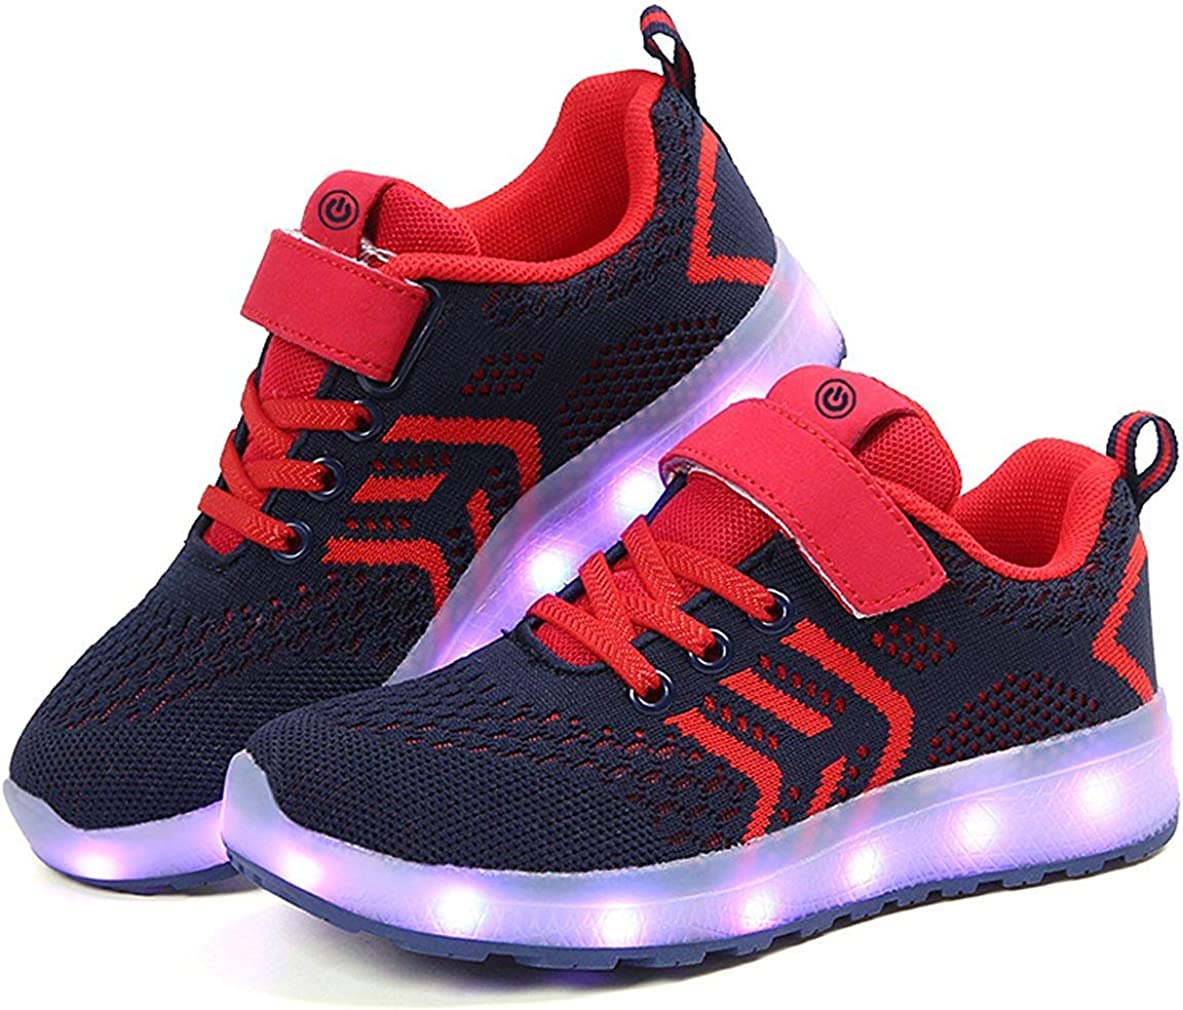 AGoGo 7 Colors LED Light-Up Kids Sport Shoes Sneakers USB Charging for Valentines Day Christmas Halloween